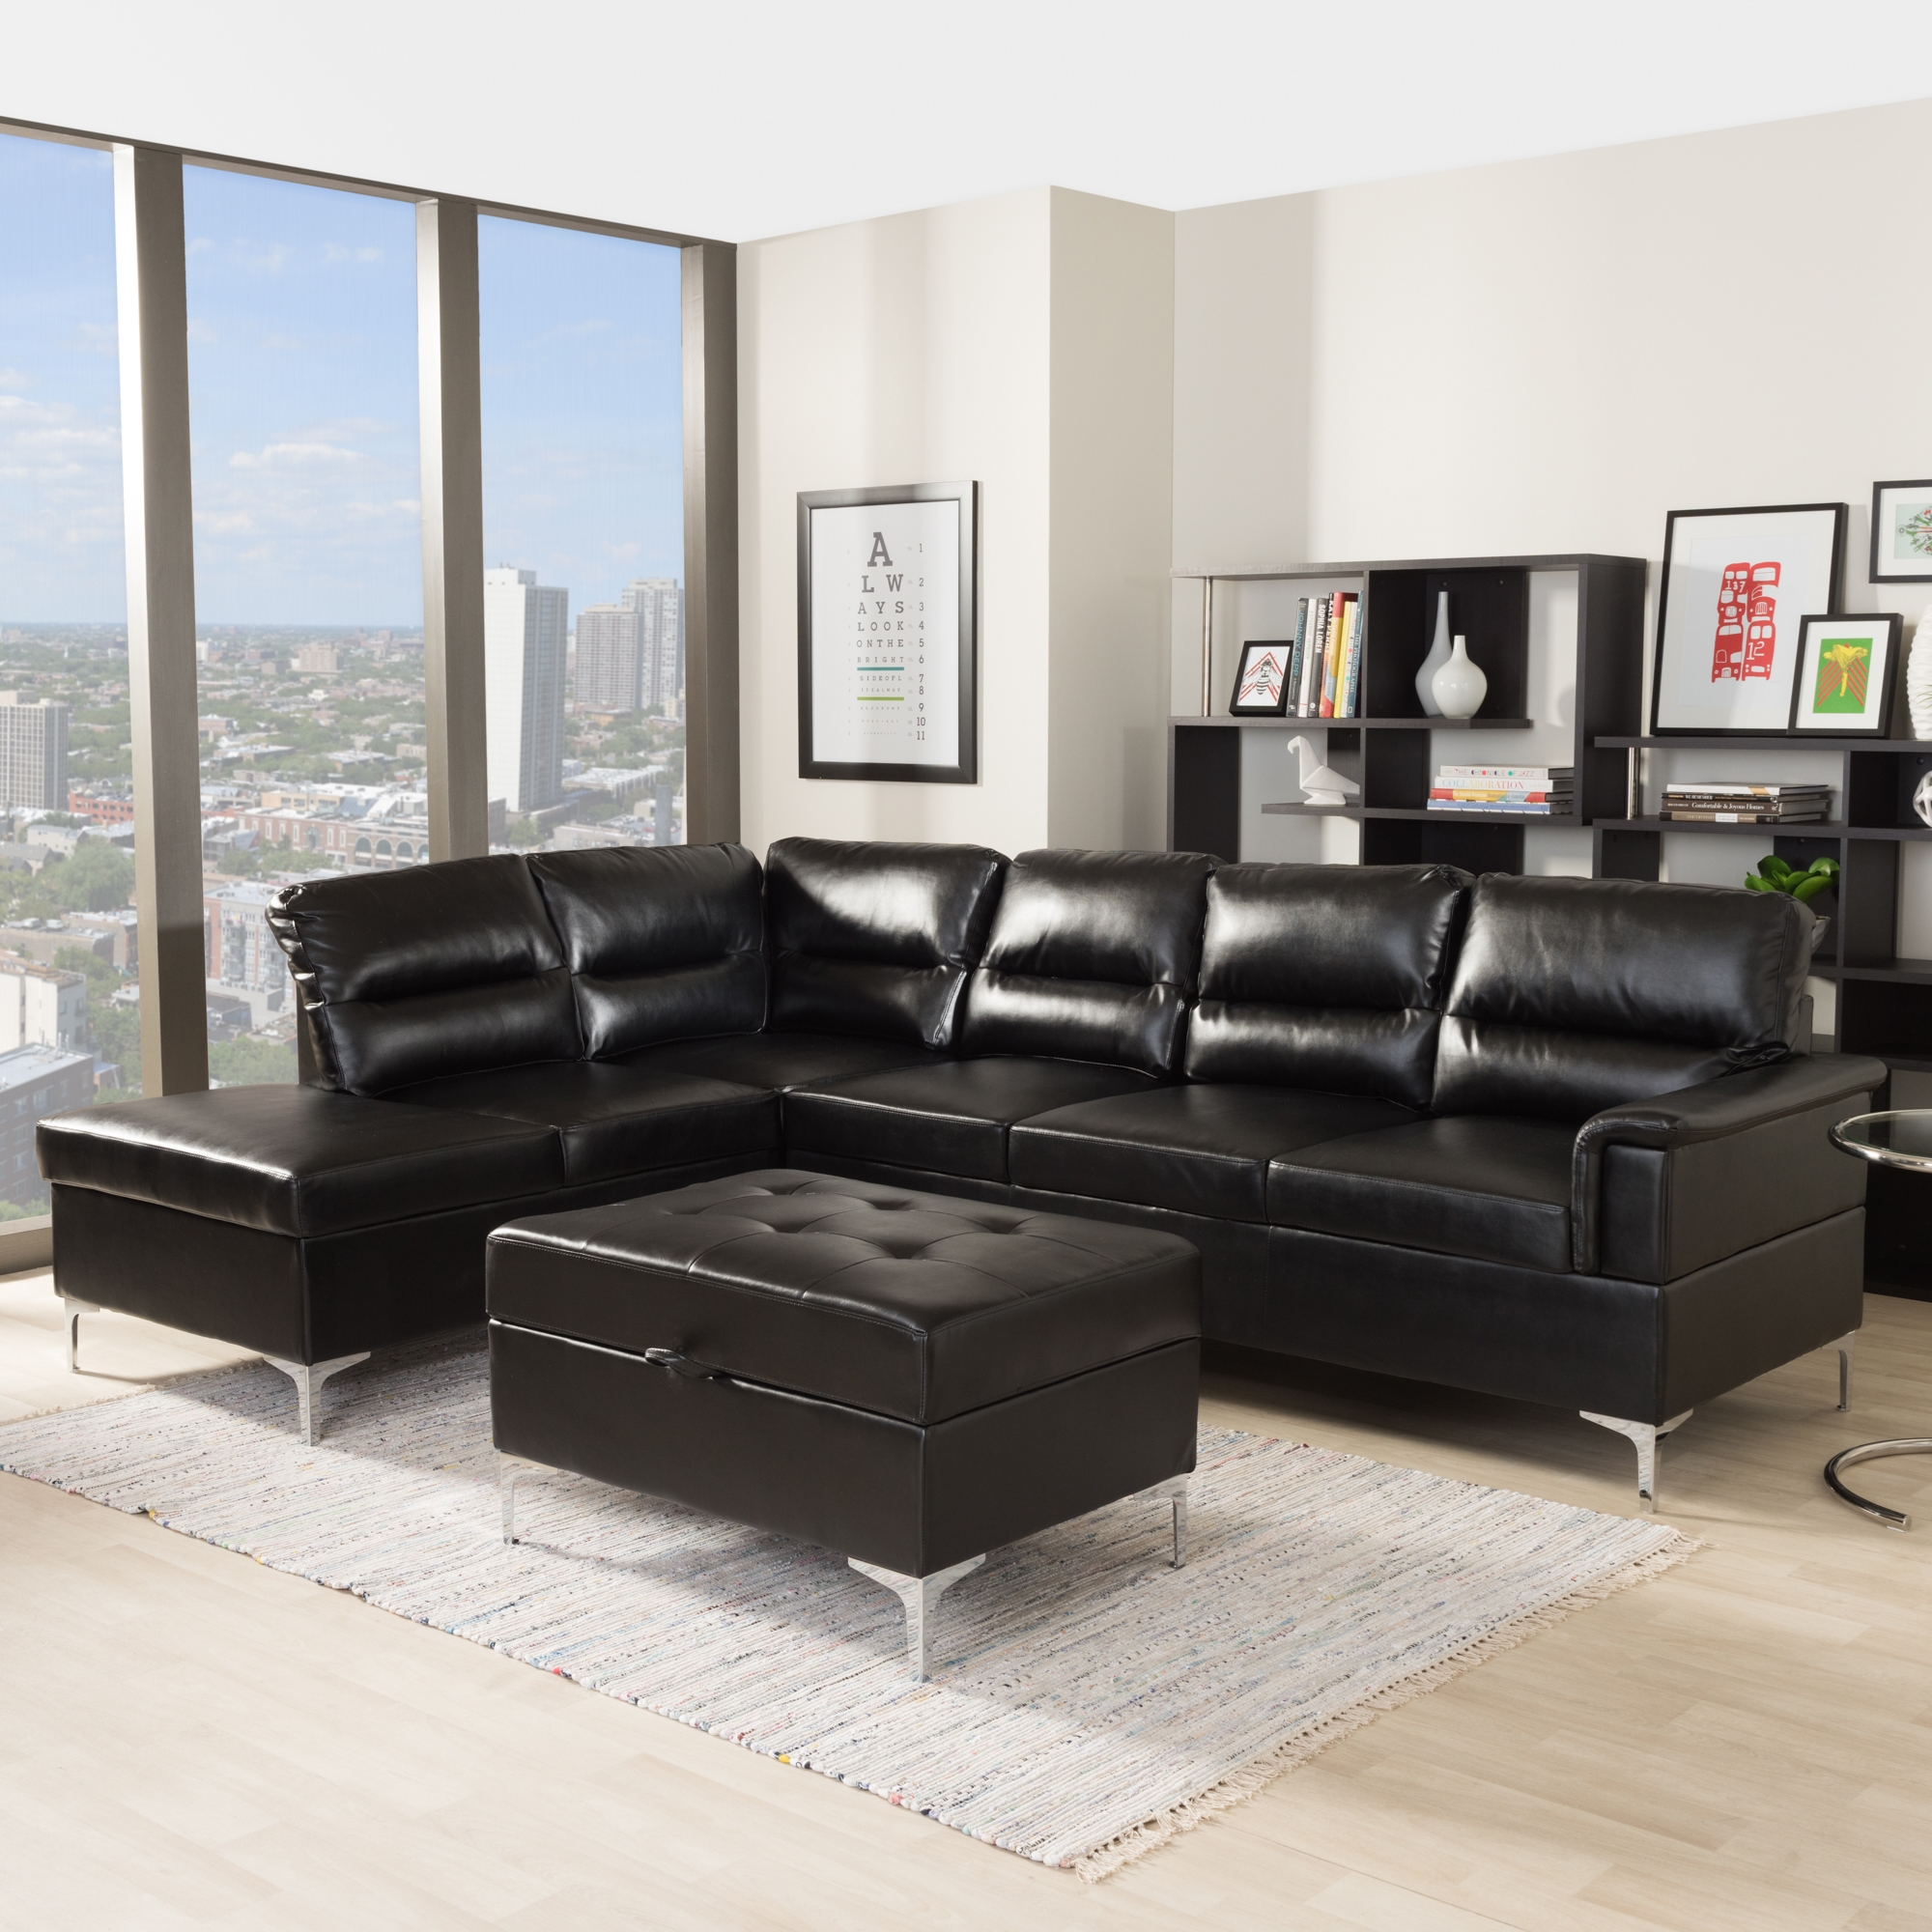 baxton studio kinsley modern and black faux leather upholstered 3piece sectional sofa with - 3 Piece Sectional Sofa